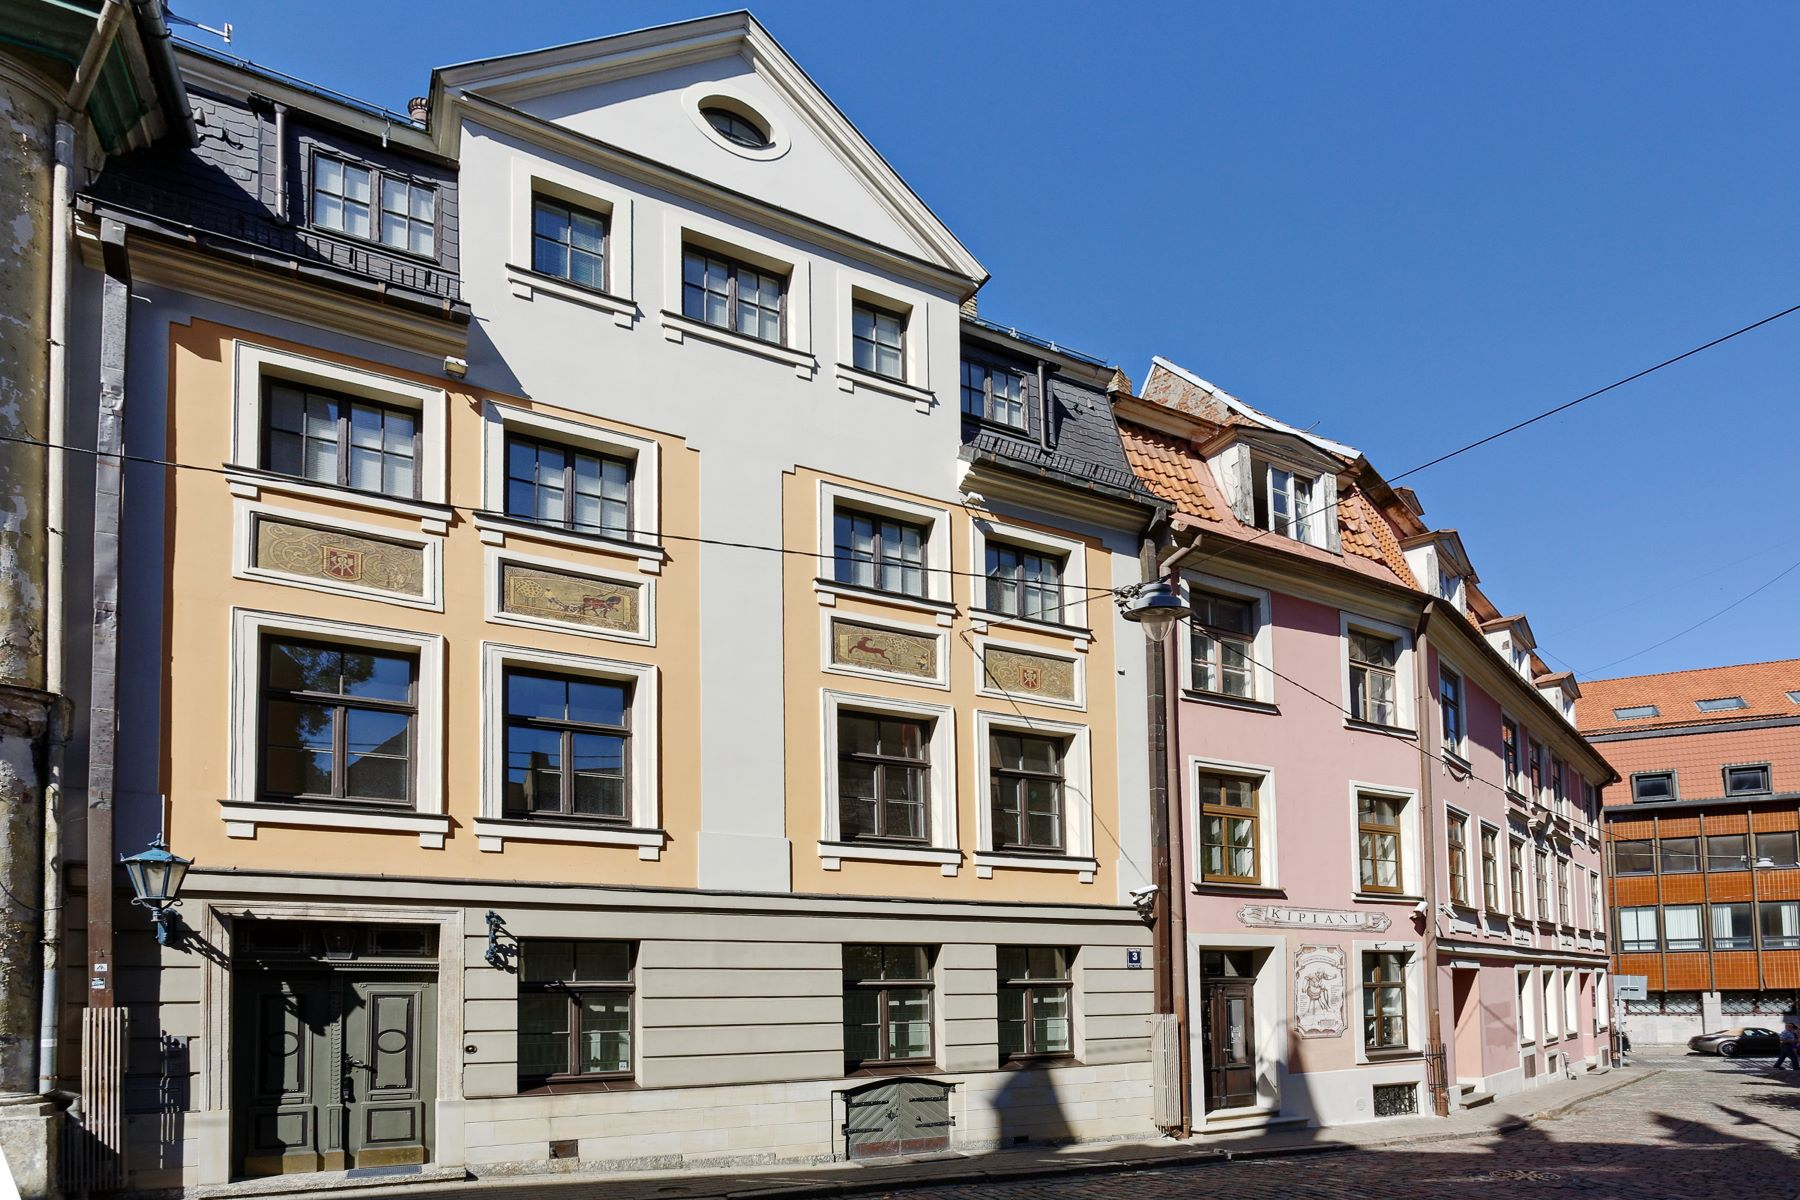 Single Family Home for Sale at The house ownership in the heart of the Old Town Riga, Other Areas In Latvia, Latvia